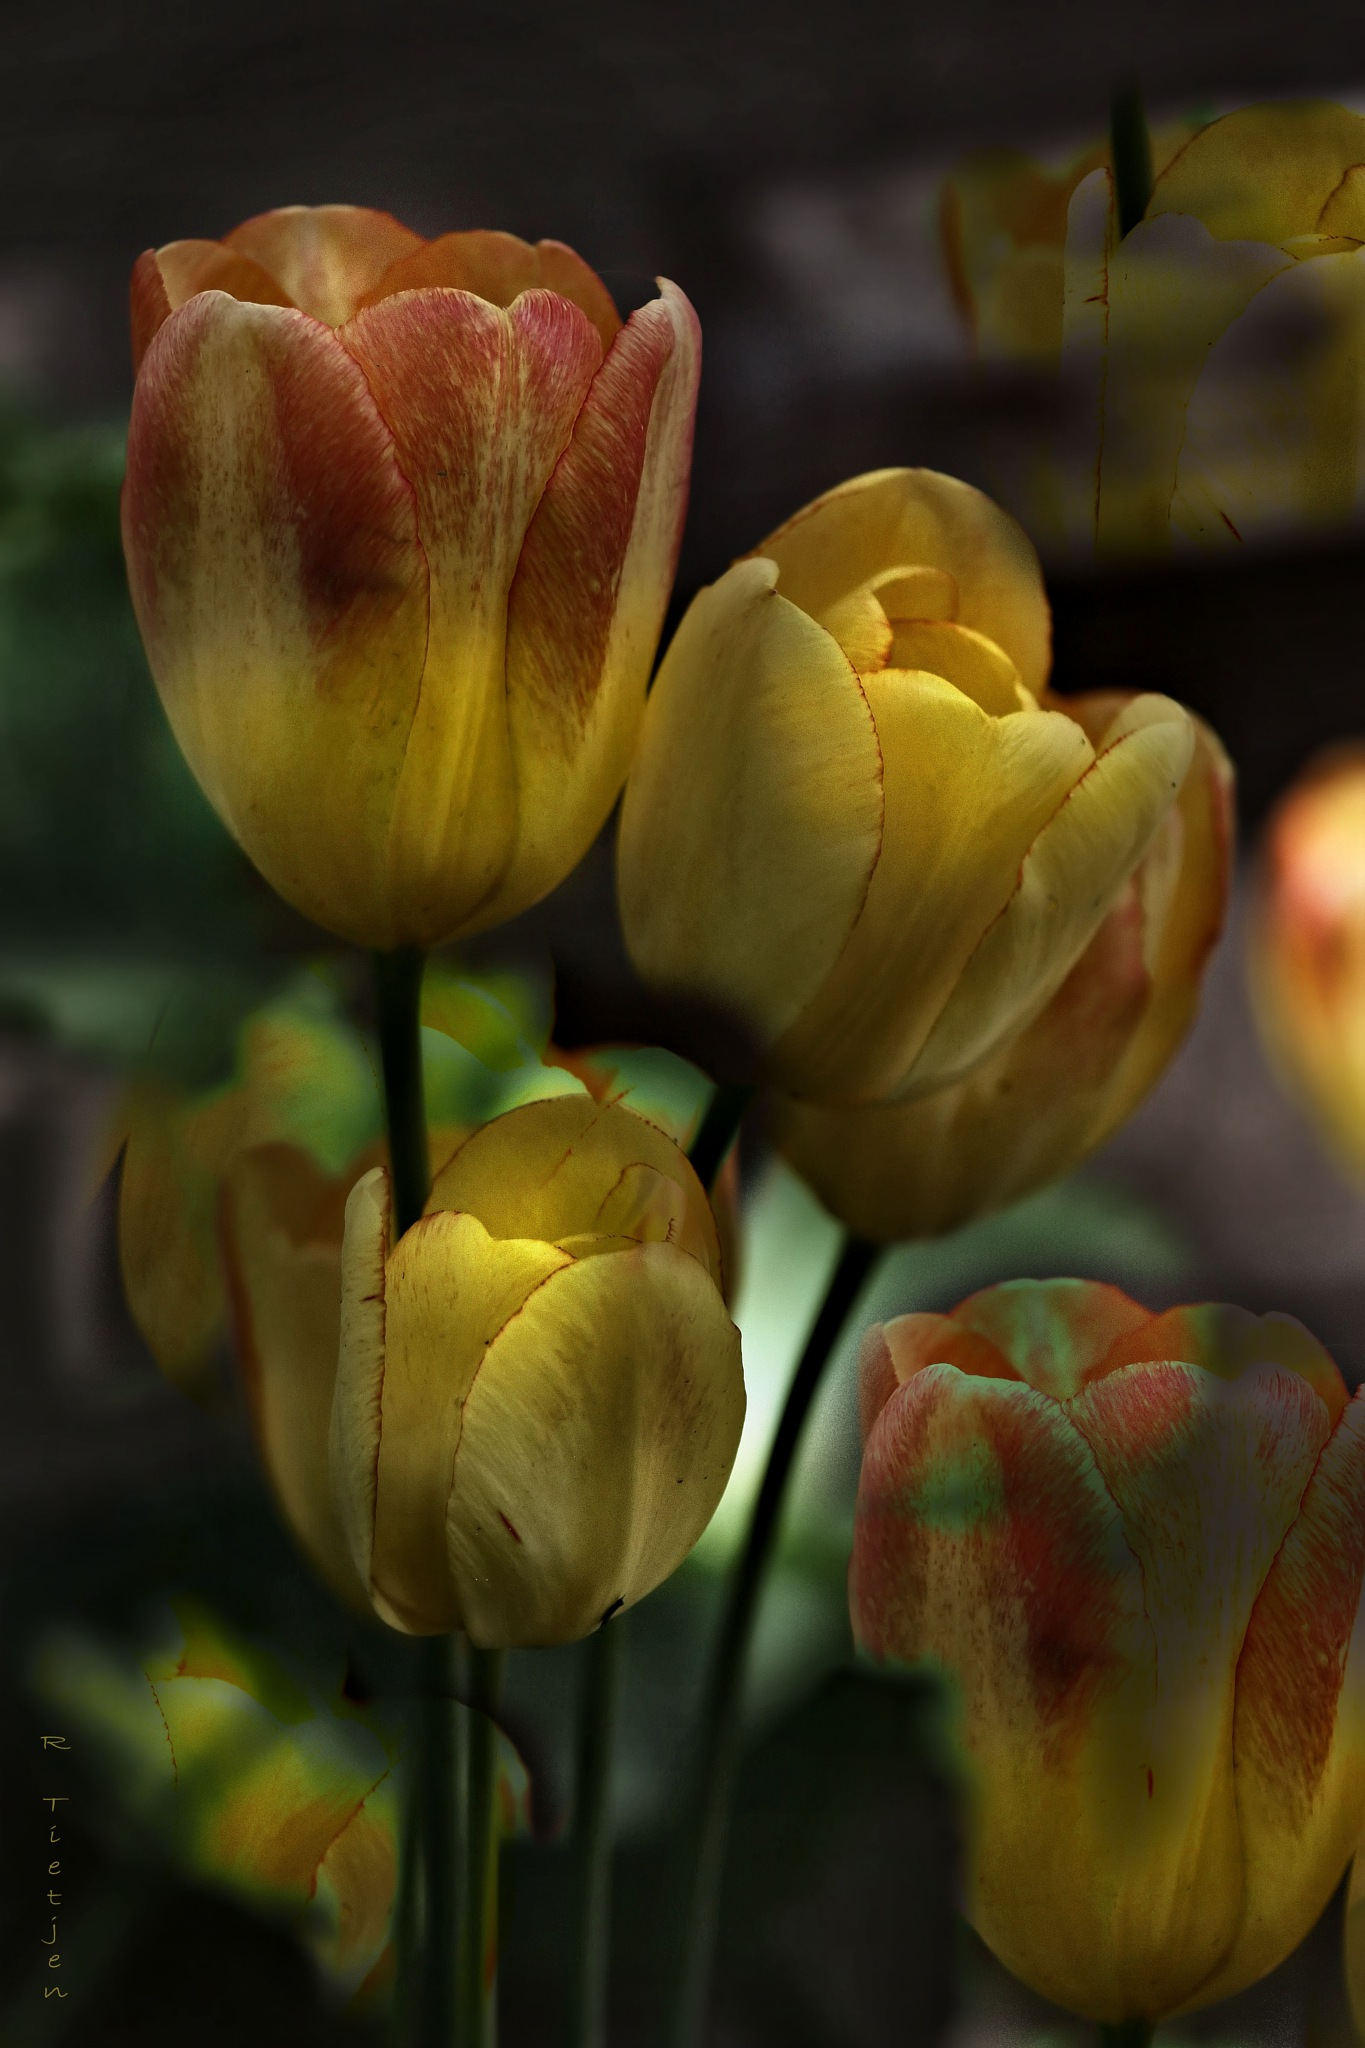 Dirty Tulips #2 by Rodney Tietjen